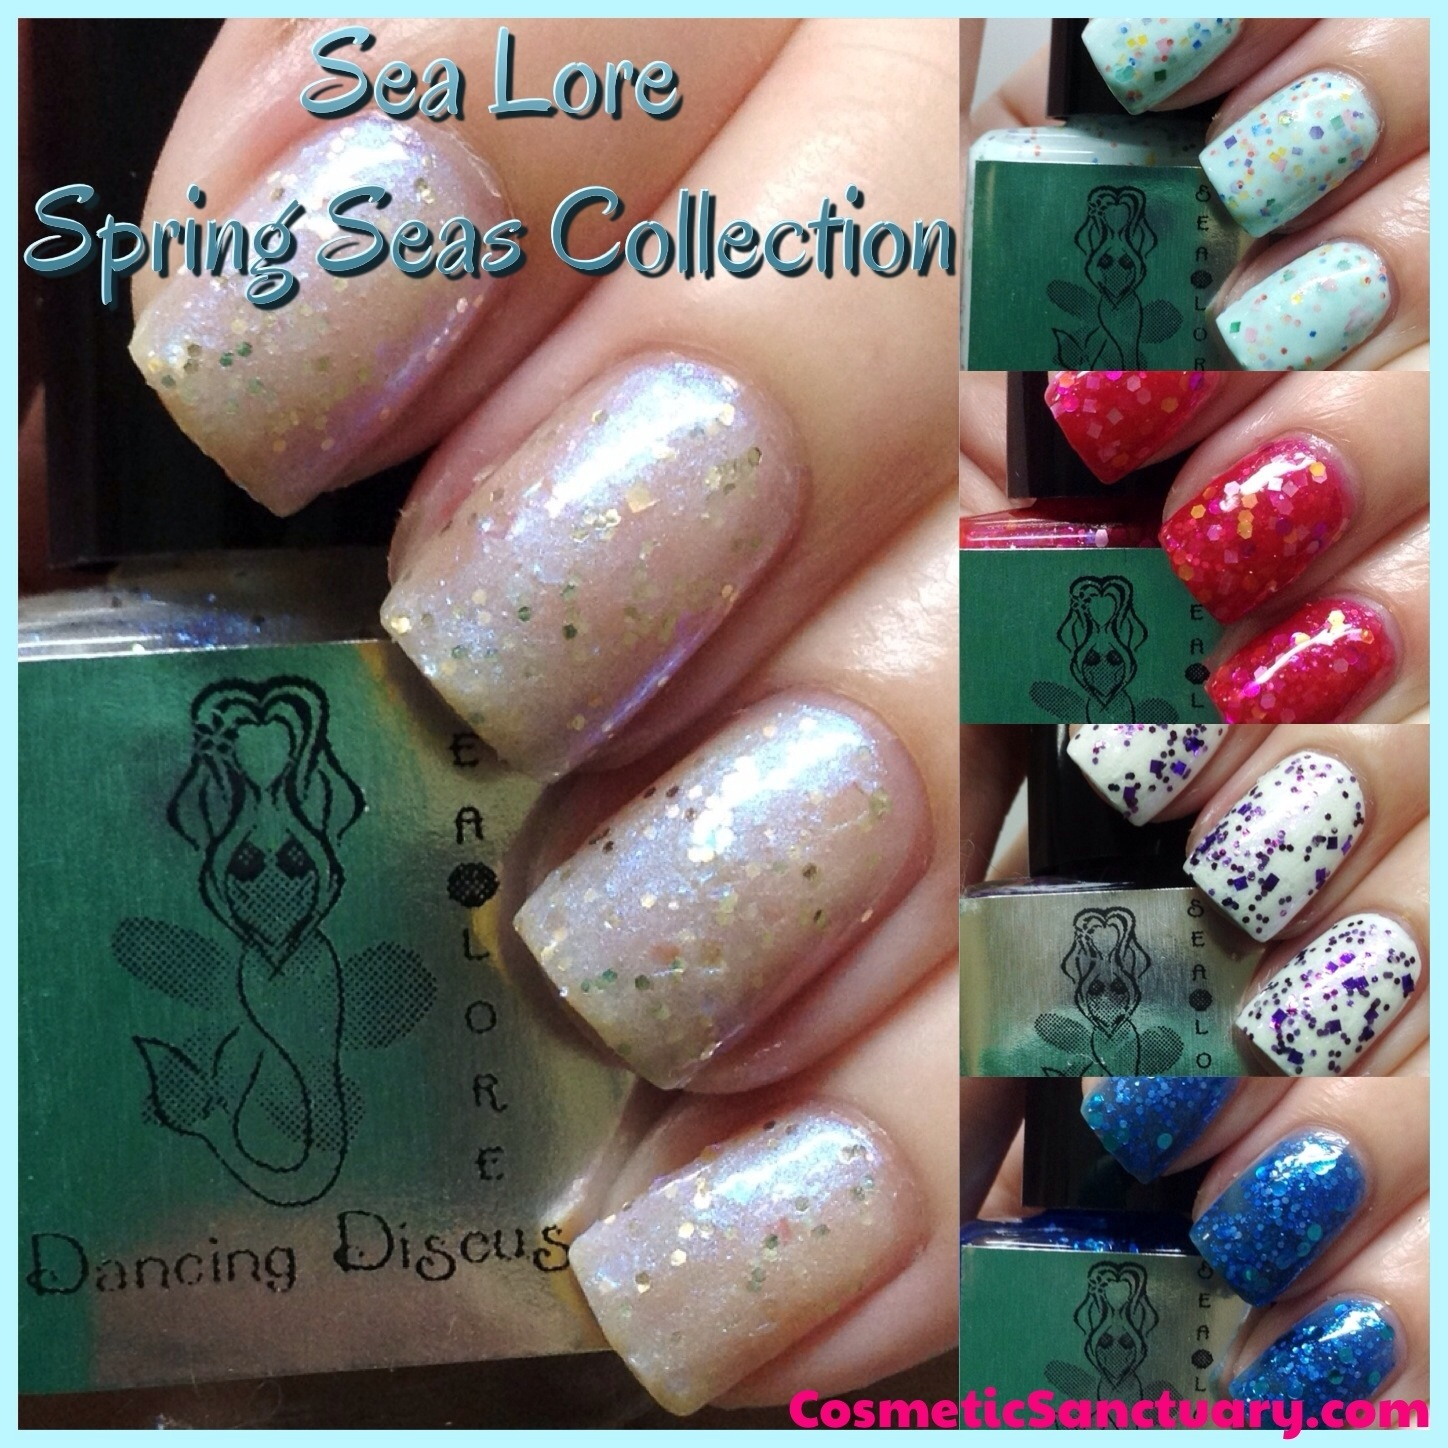 Sea Lore Spring Seas Collection Swatches and Review